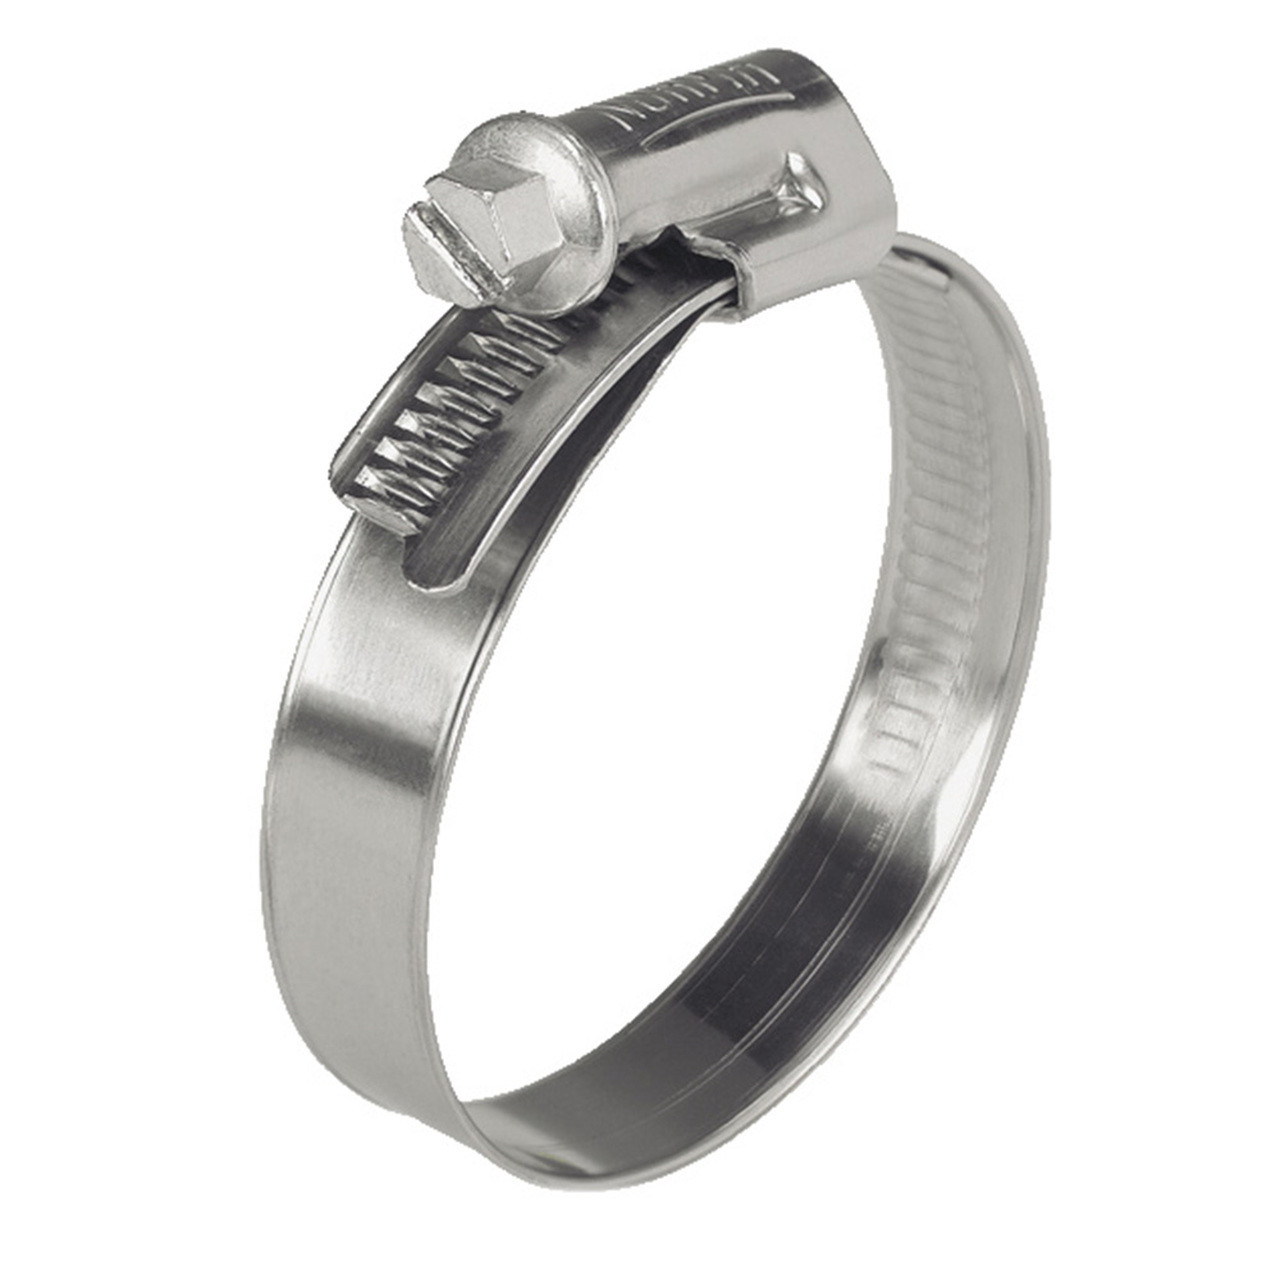 12 - 20mm Norma W4 All Stainless Steel Clamp - Worm Drive